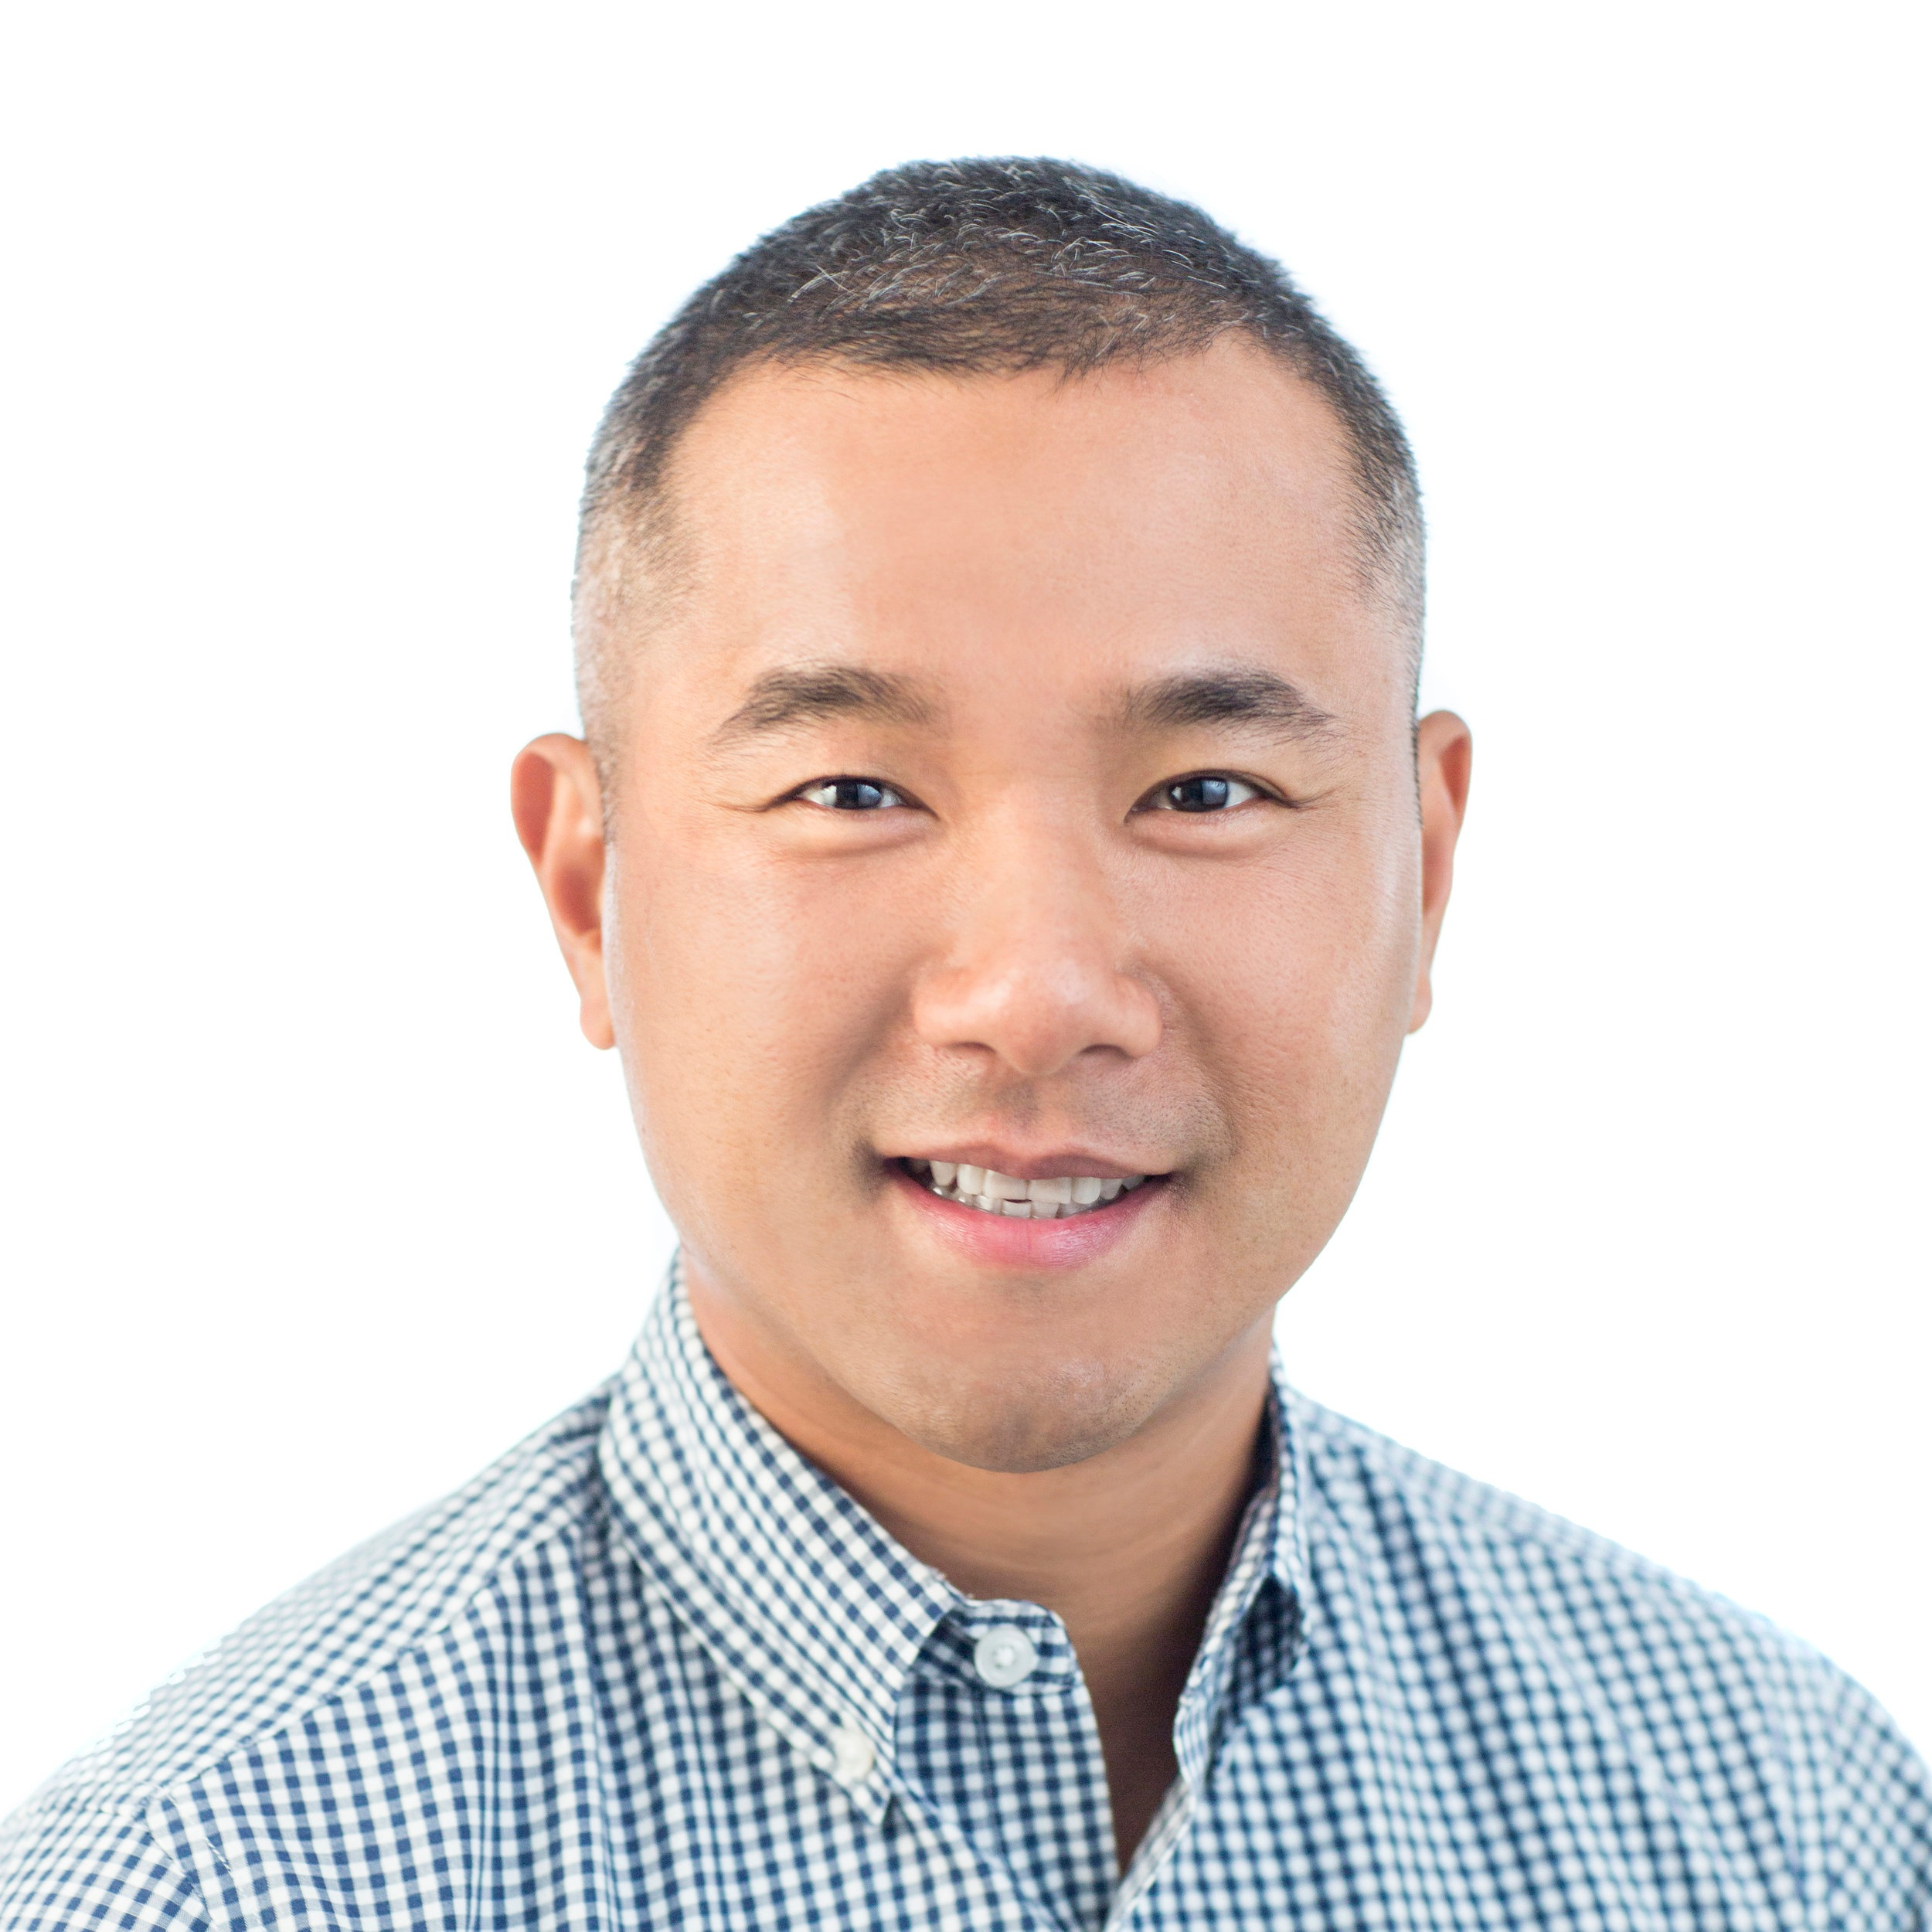 Kevin Doan - Senior Manager, Process Engineering Team